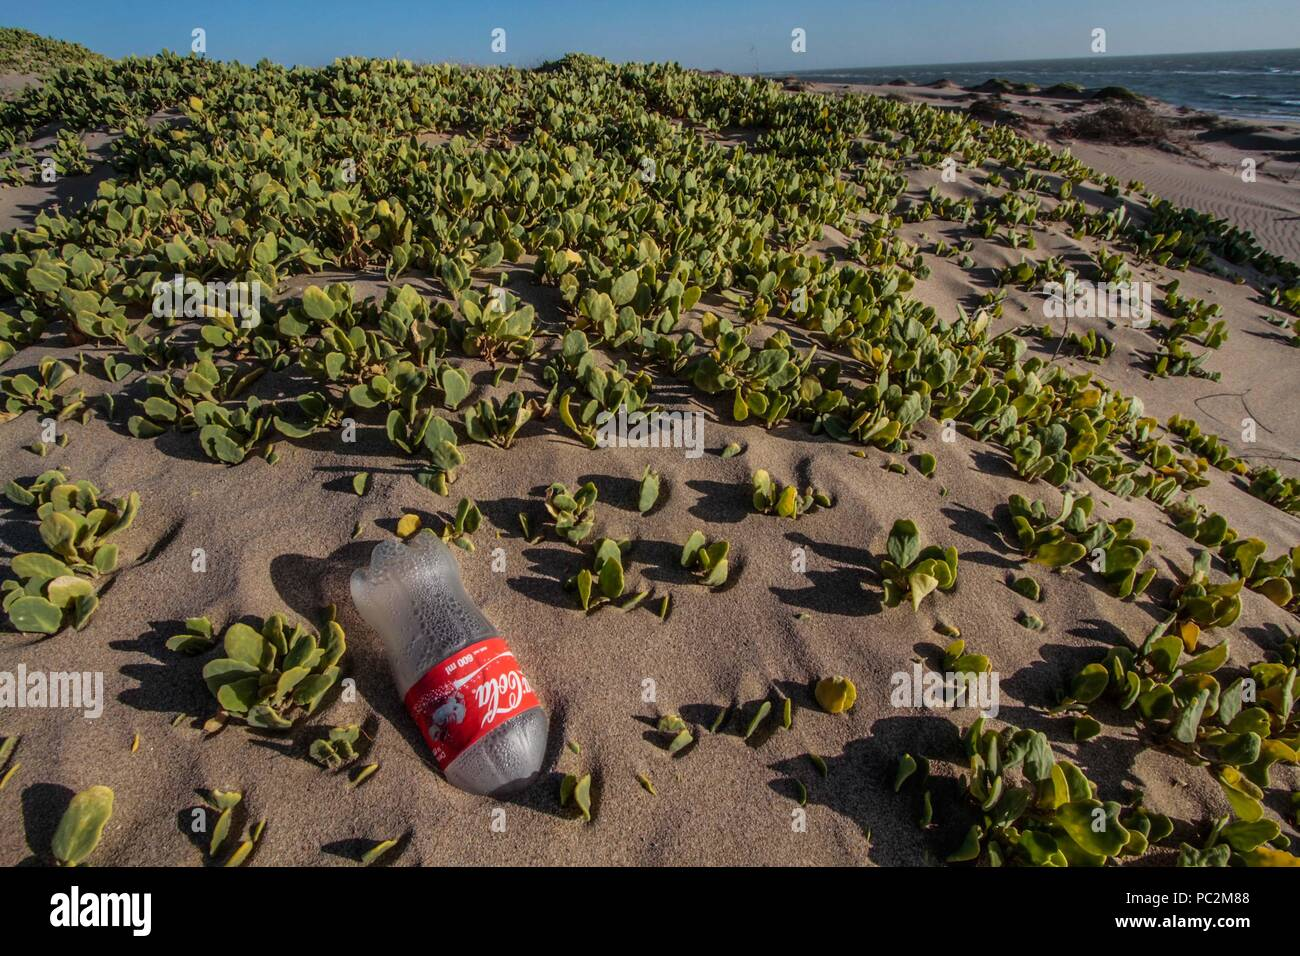 Empty plastic bottle of Coca Cola brand gas, cause of pollution and environmental impact. Sand dunes at Imalaya Beach in the vicinity of Kino Bay, Sonora Mexico. Gulf of California.   botella vacia de plastico de la marca gaseosa Coca Cola, causa de la contaminacion y afectacion al medio ambiente. Dunas de arena en la Playa Imalaya en los alrededores de bahia de Kino, Sonora Mexico. Golfo de California - Stock Image